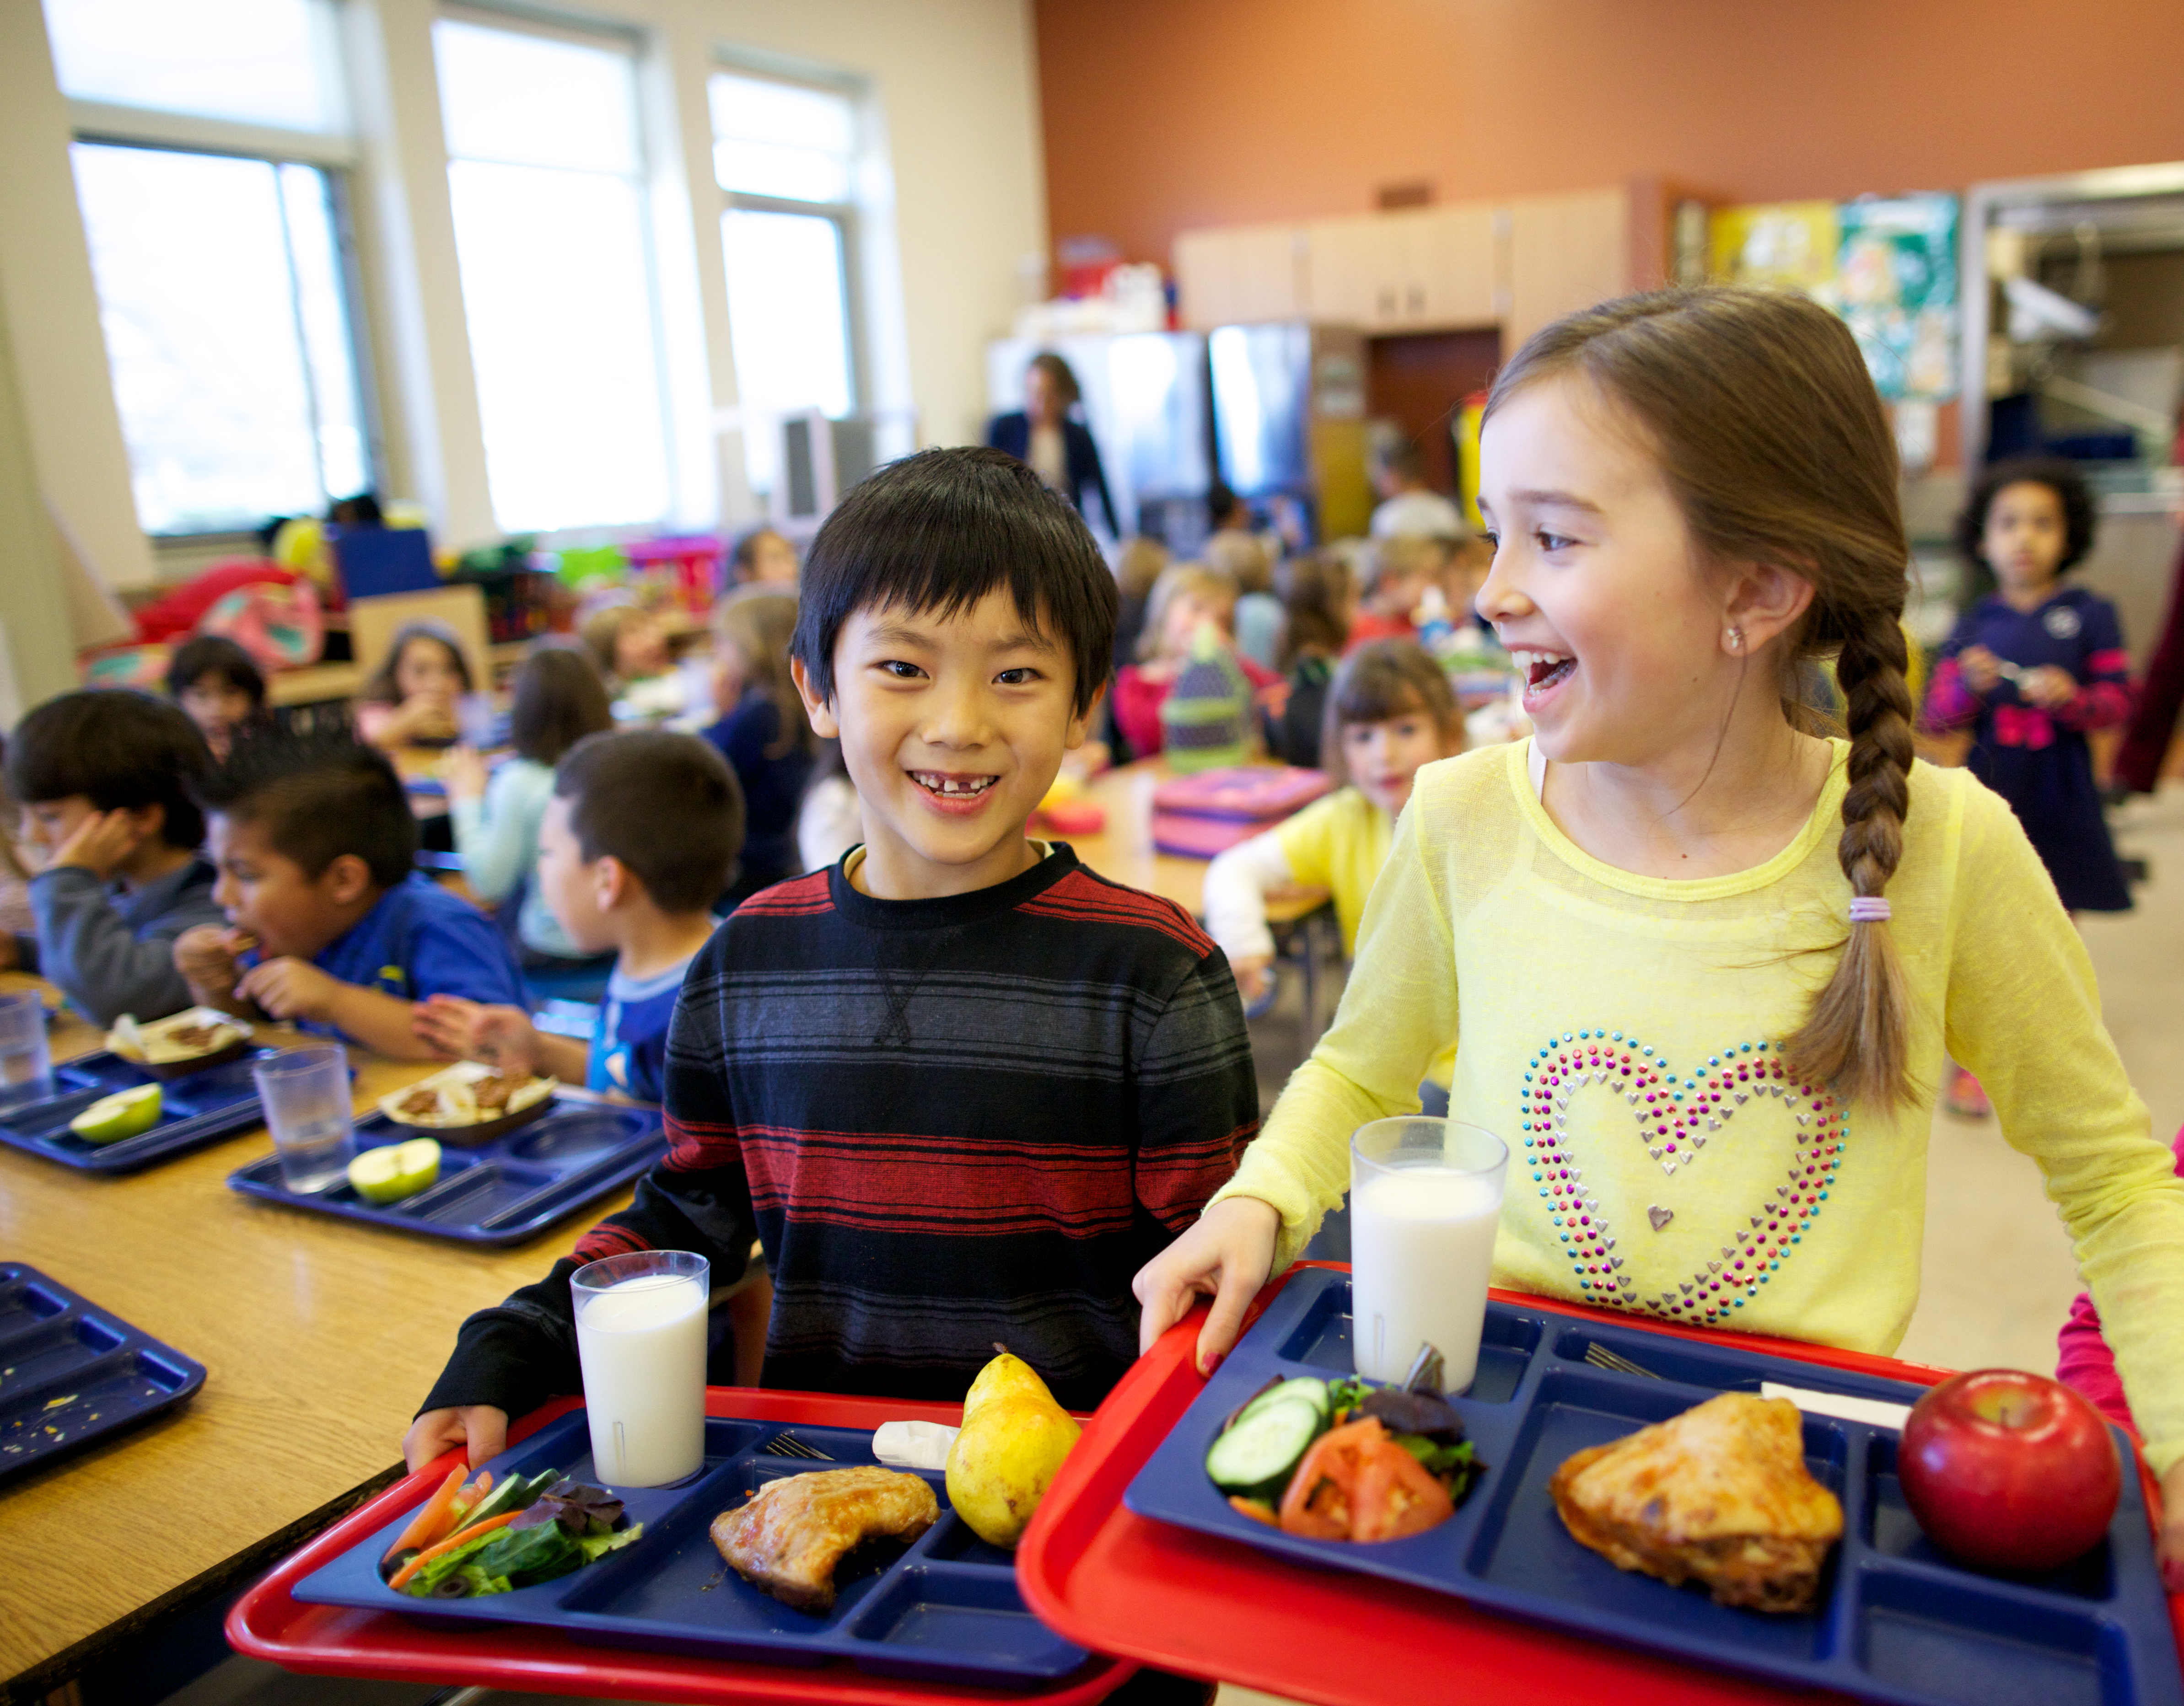 Whole Kids Foundation; Kids At Lunch in School